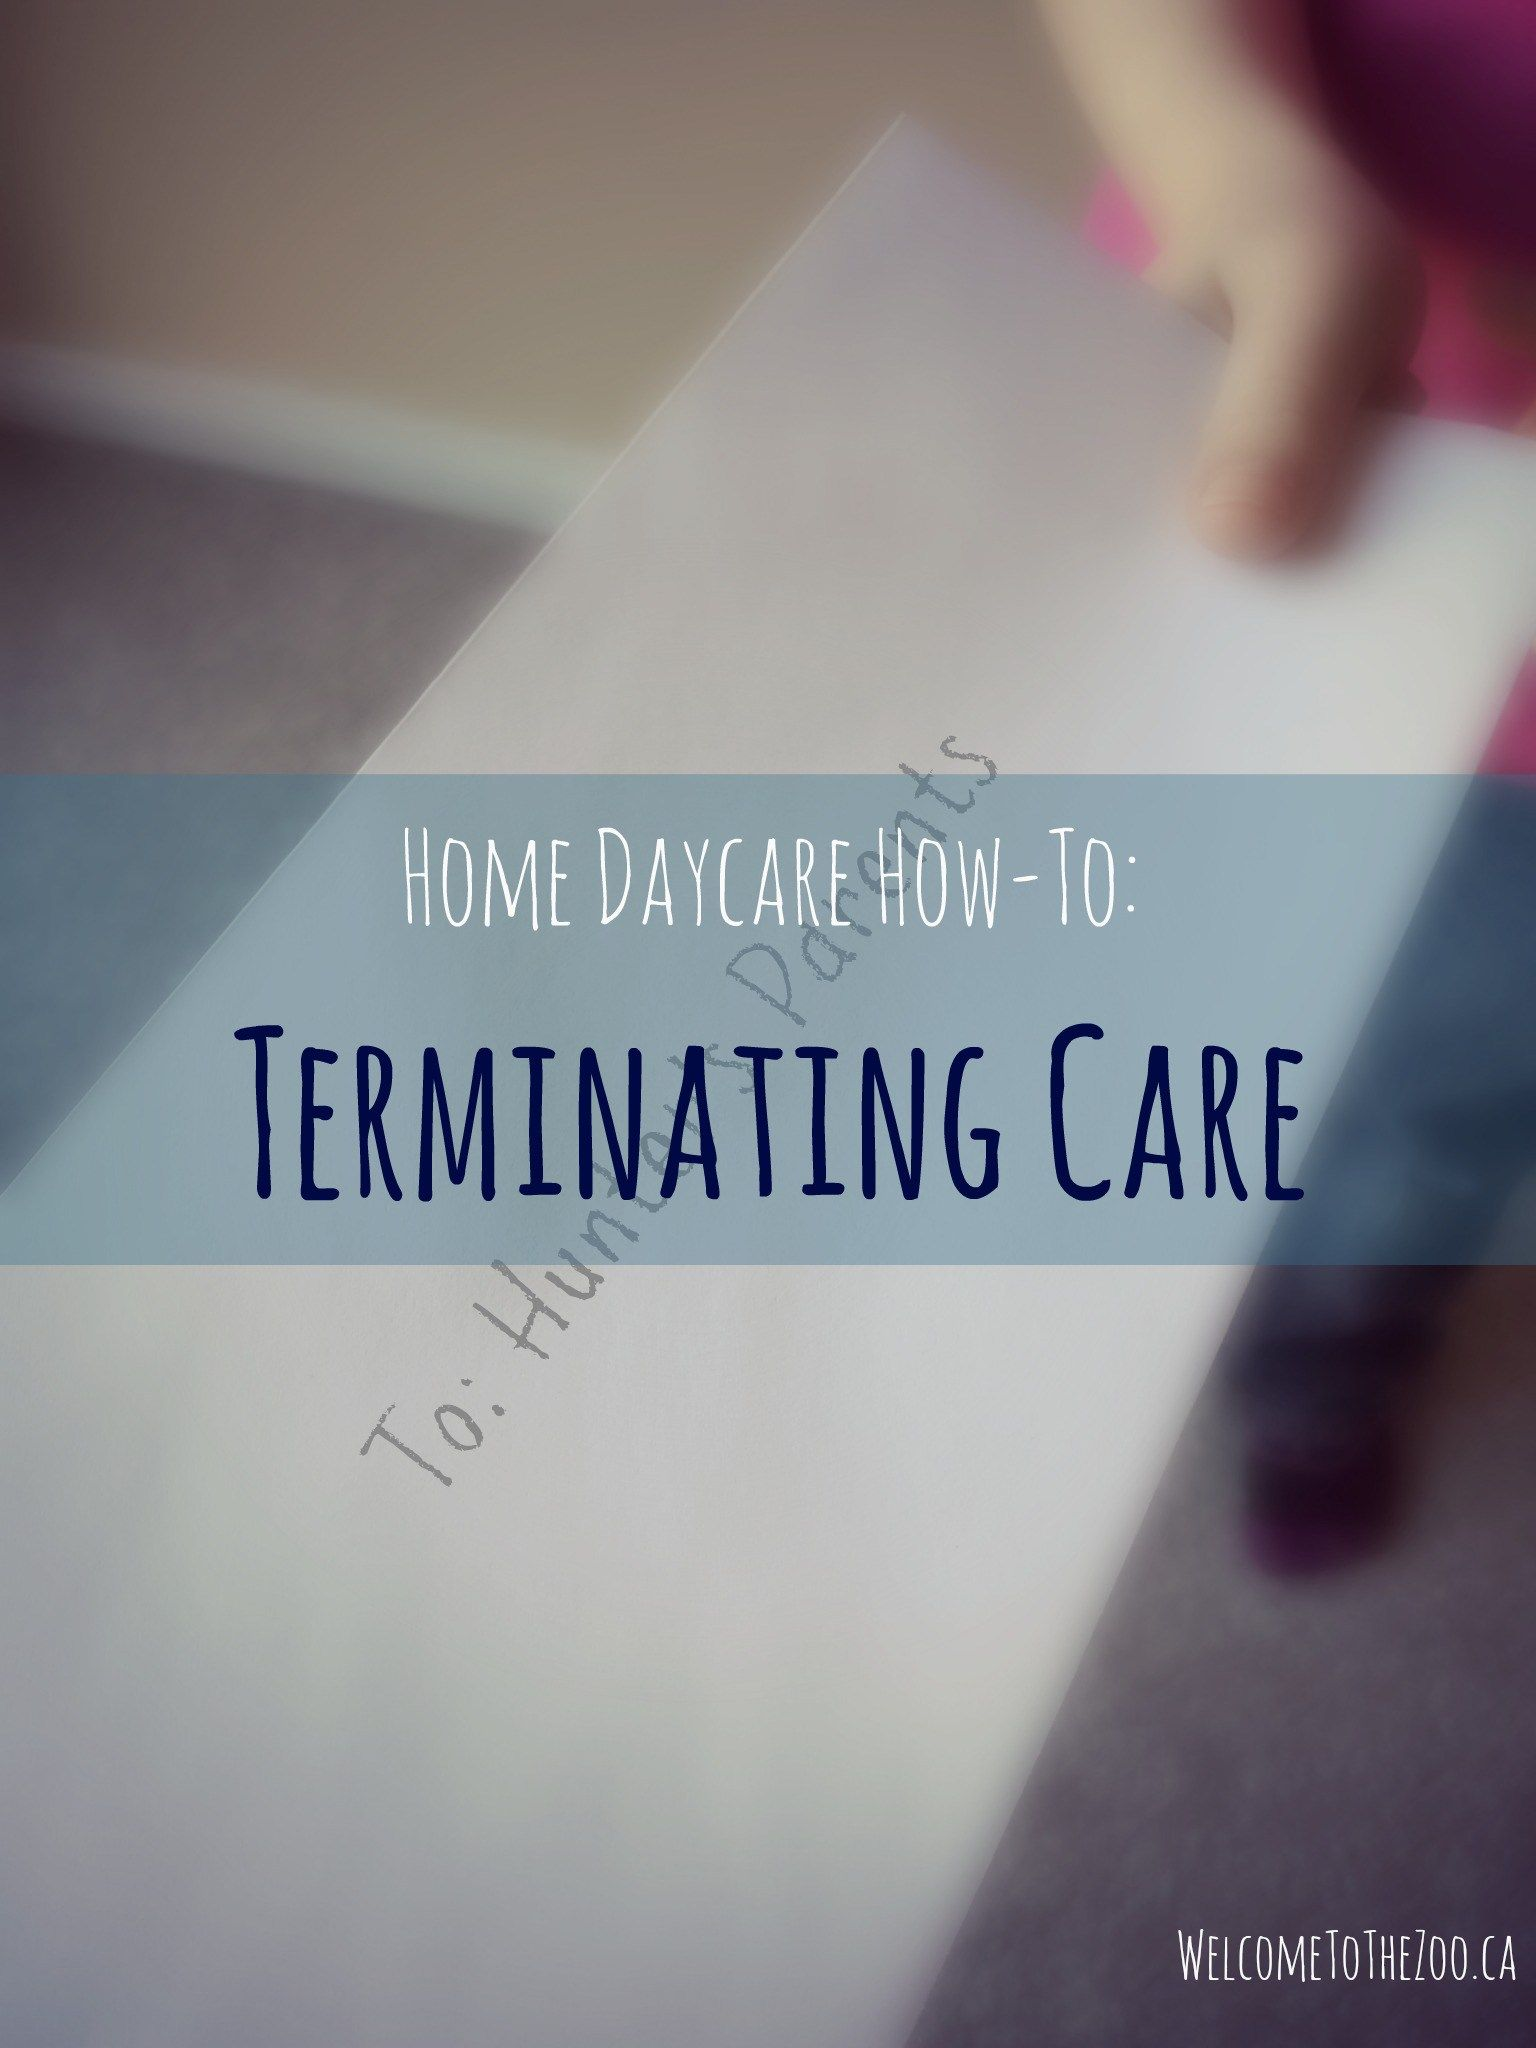 Home Daycare How To Terminate Care Home daycare